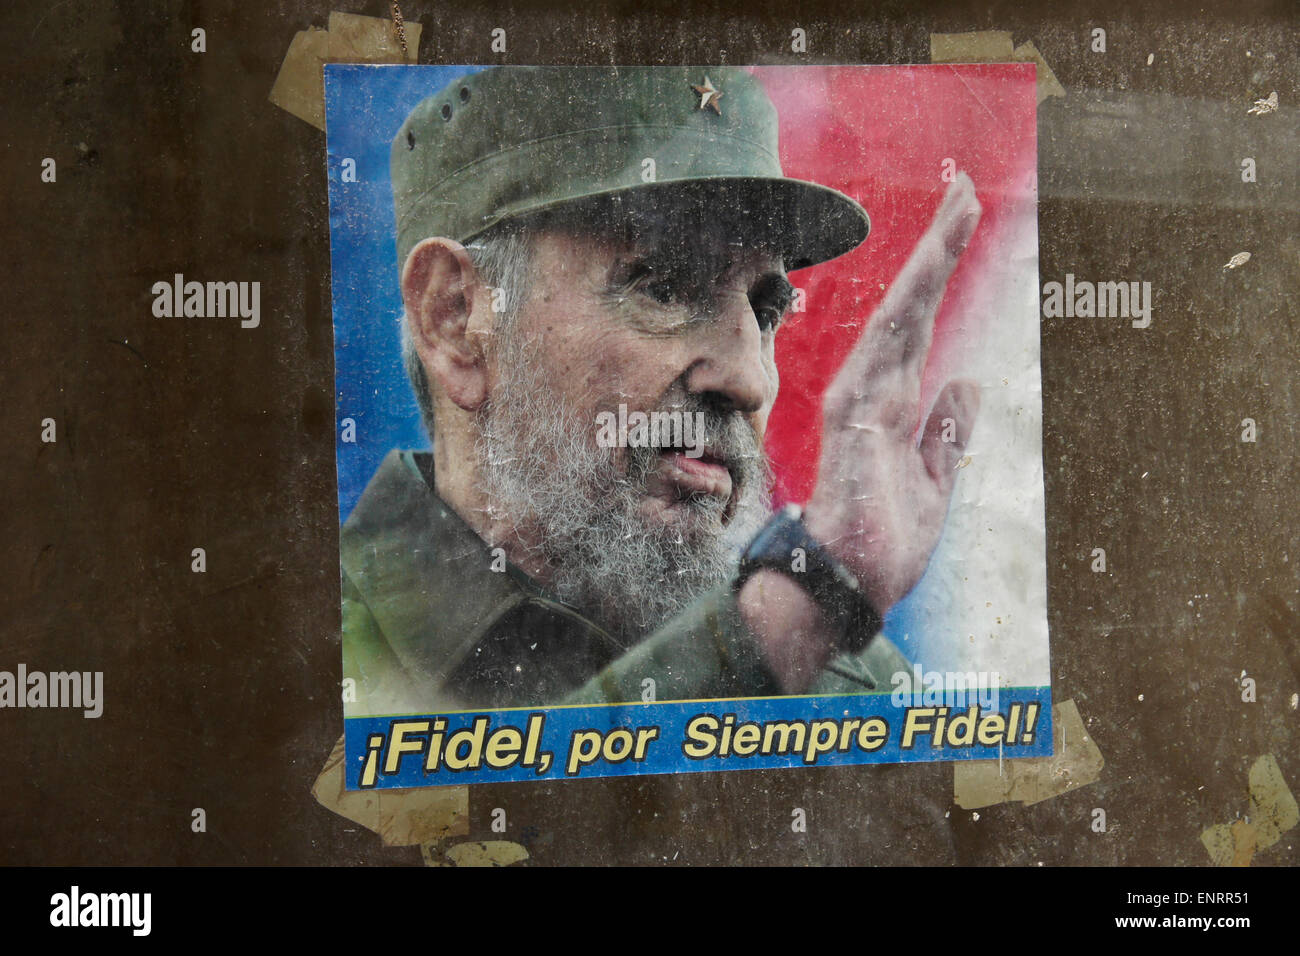 Poster of Fidel Castro in window of abandoned building, Havana, Cuba - Stock Image